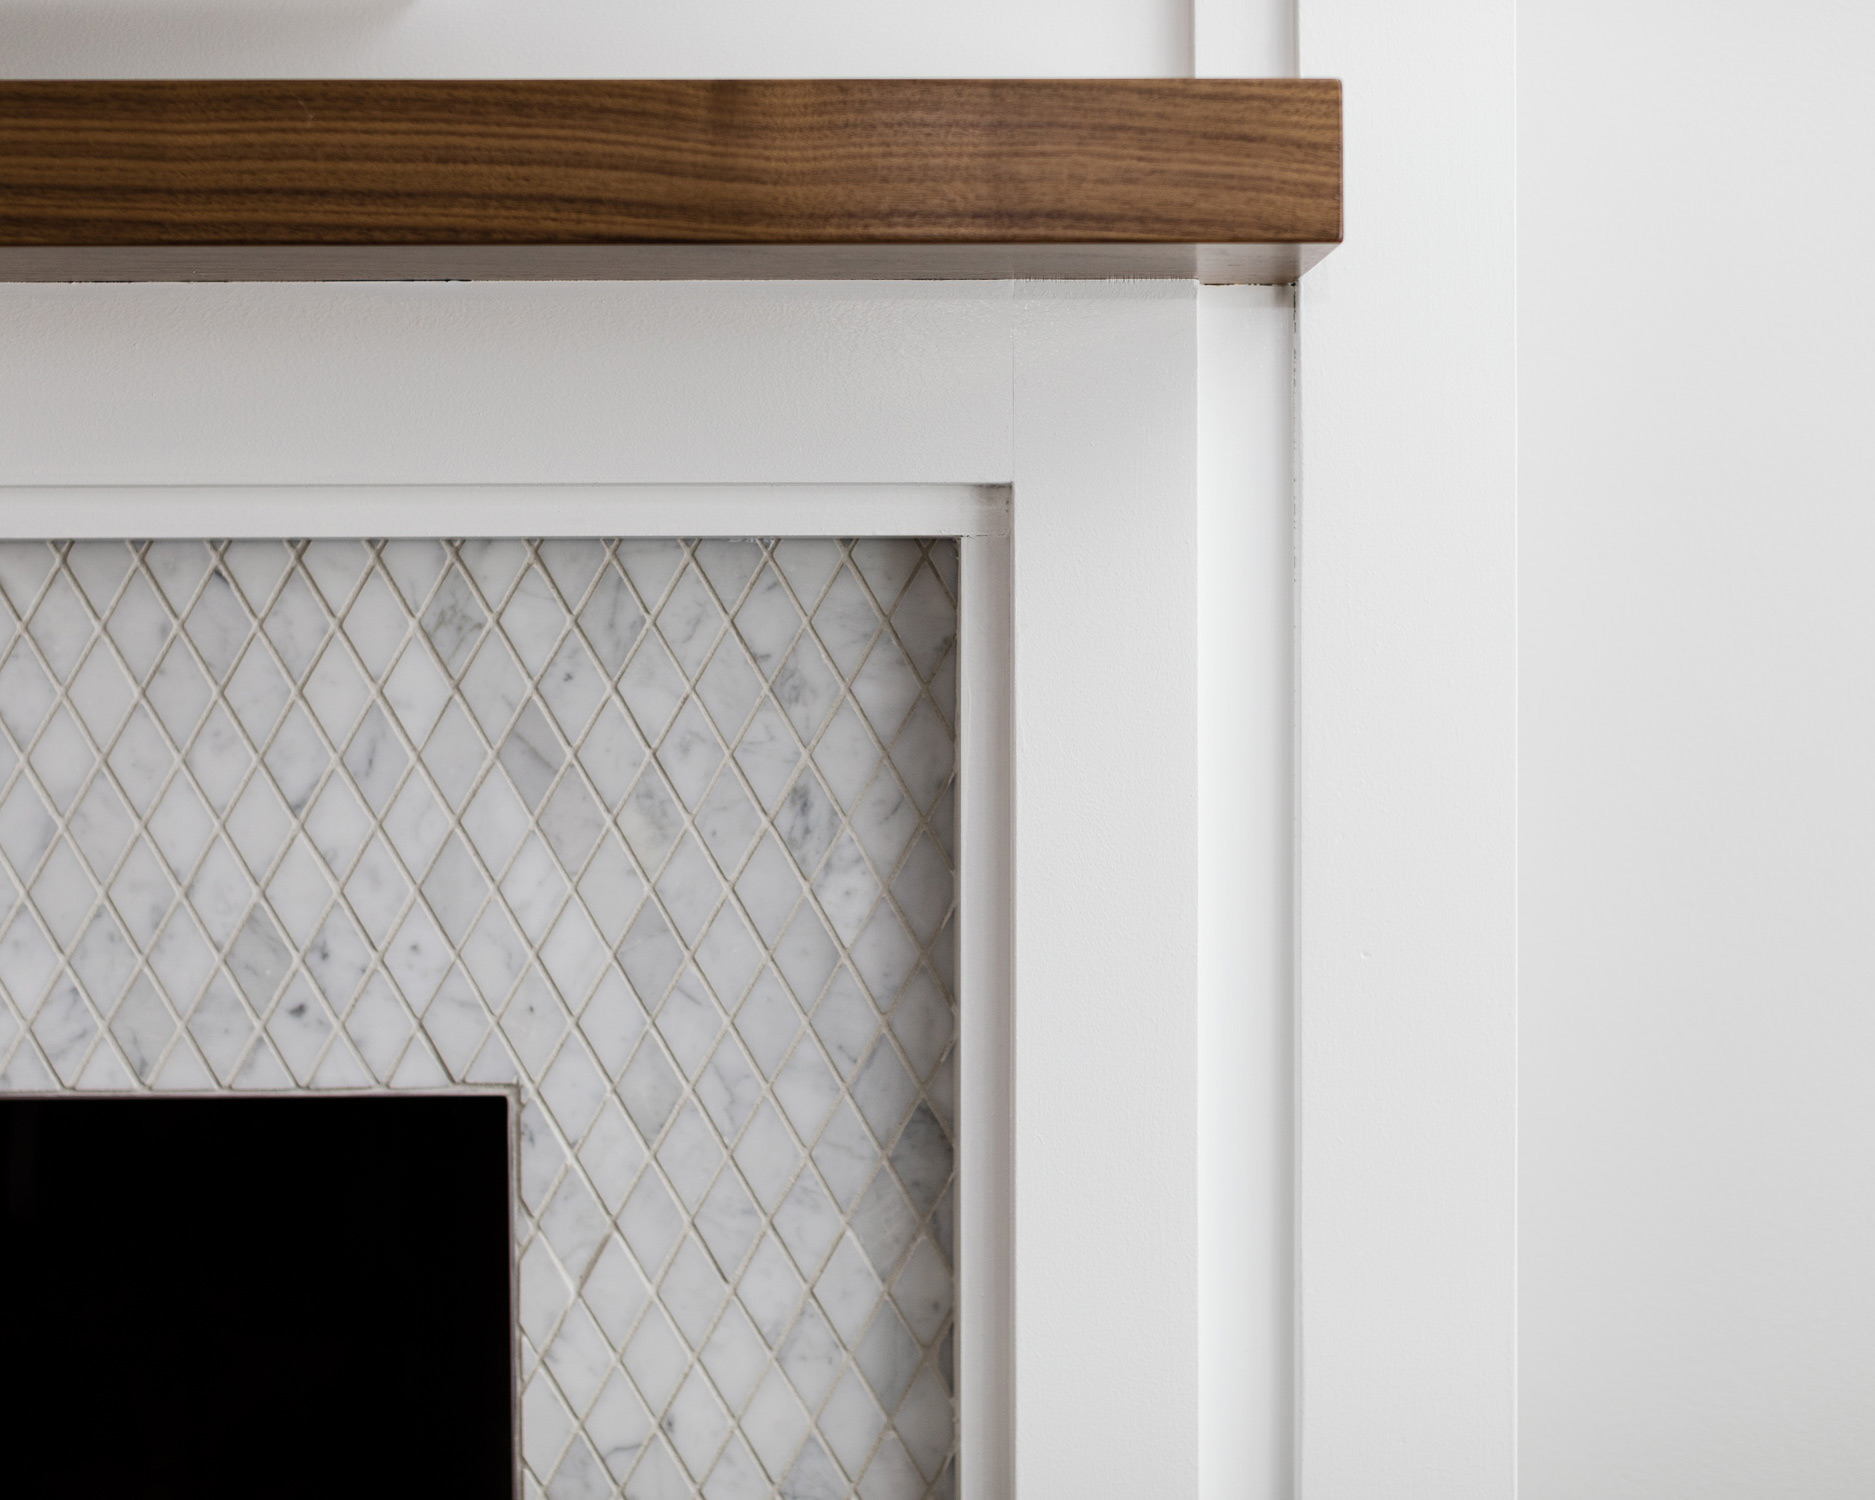 Photo of marble tiled fireplace by professional photographer Stina Booth of open concept remodel in Burlington Vermont by Roots Design Studio